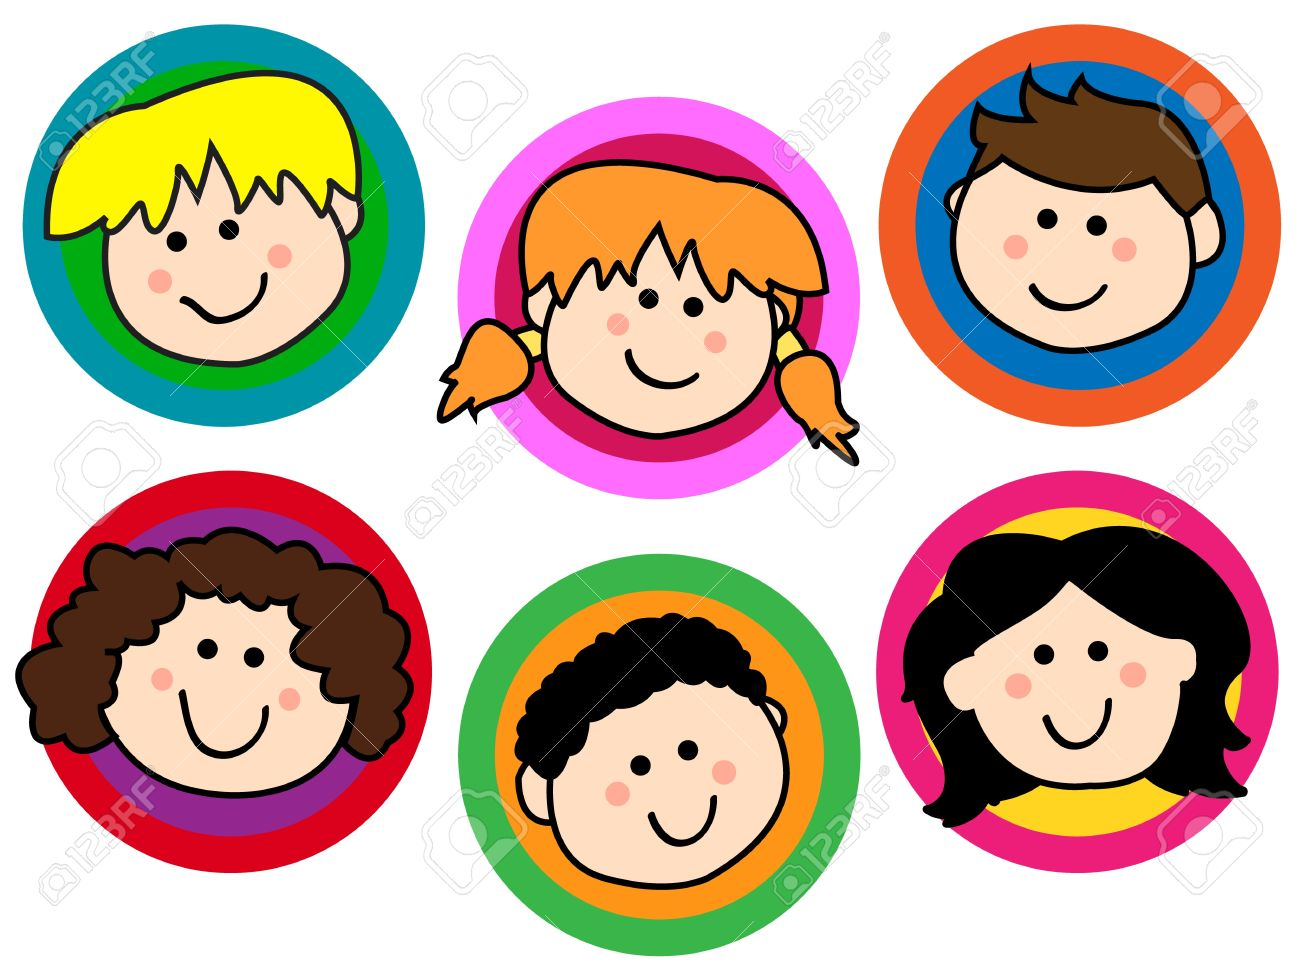 231 677 children drawing cliparts stock vector and royalty free